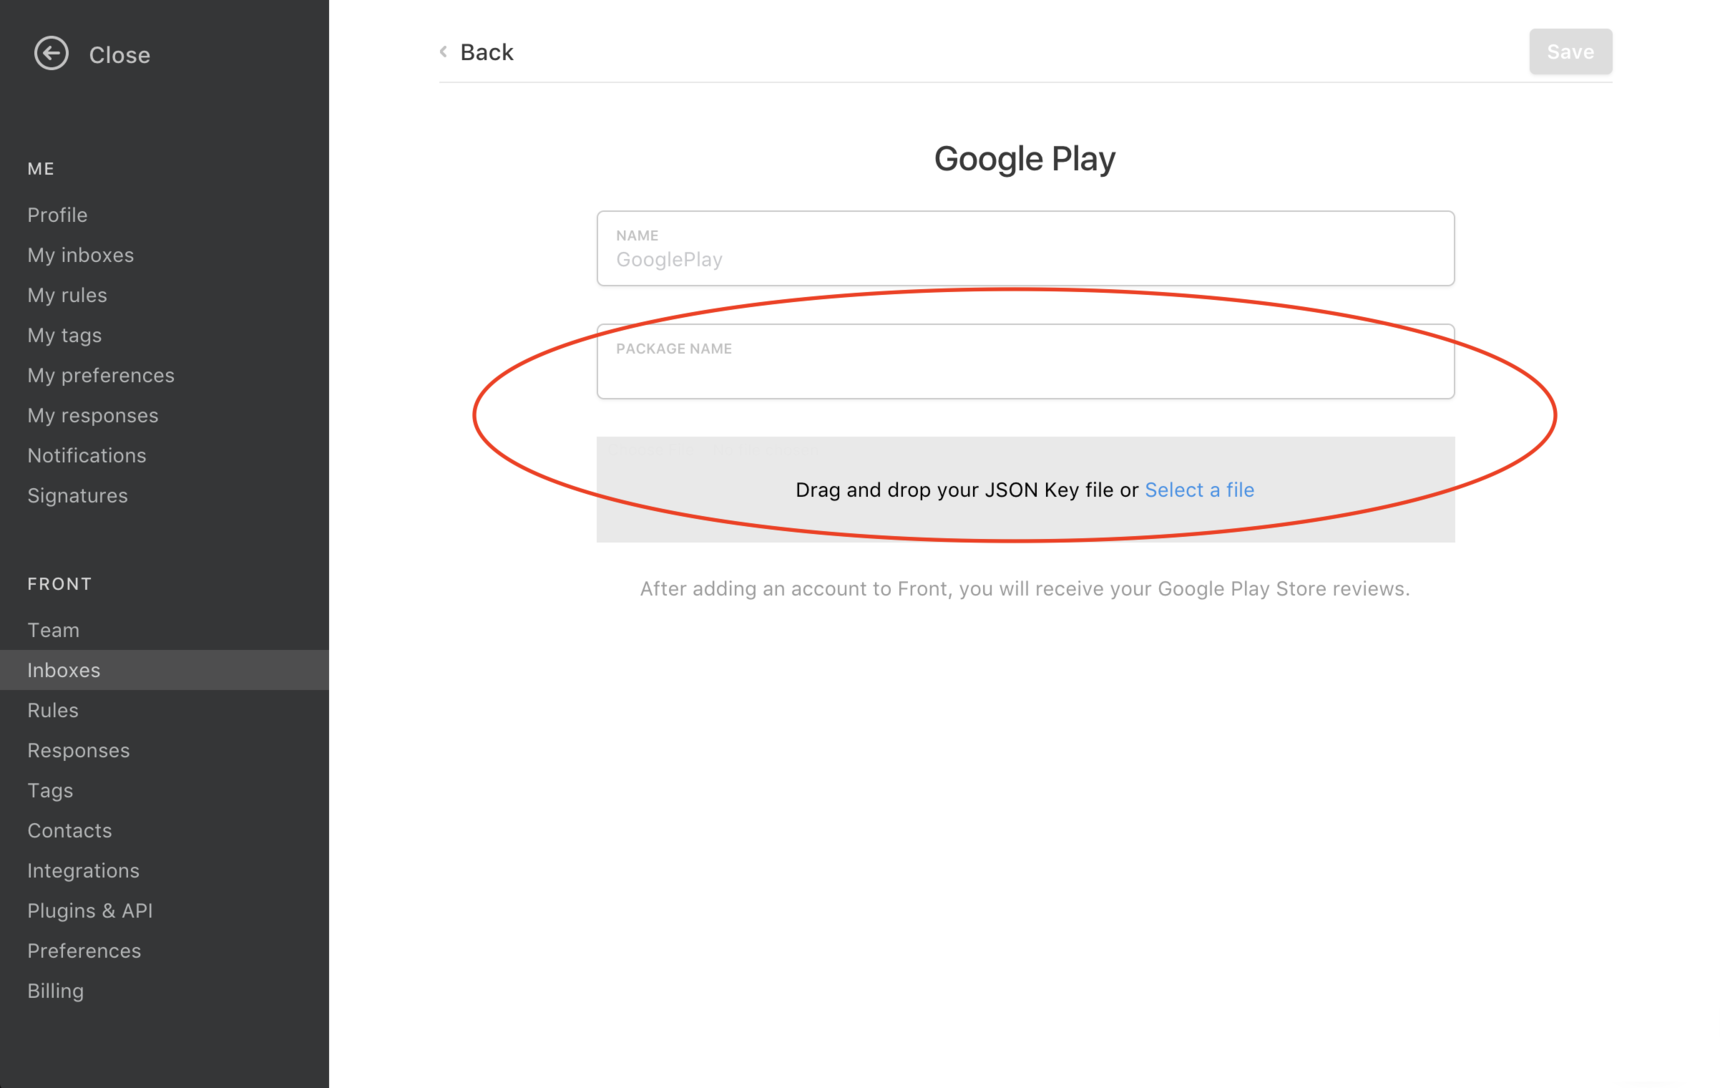 How to set up a Google Play Store inbox in Front - Adding an inbox